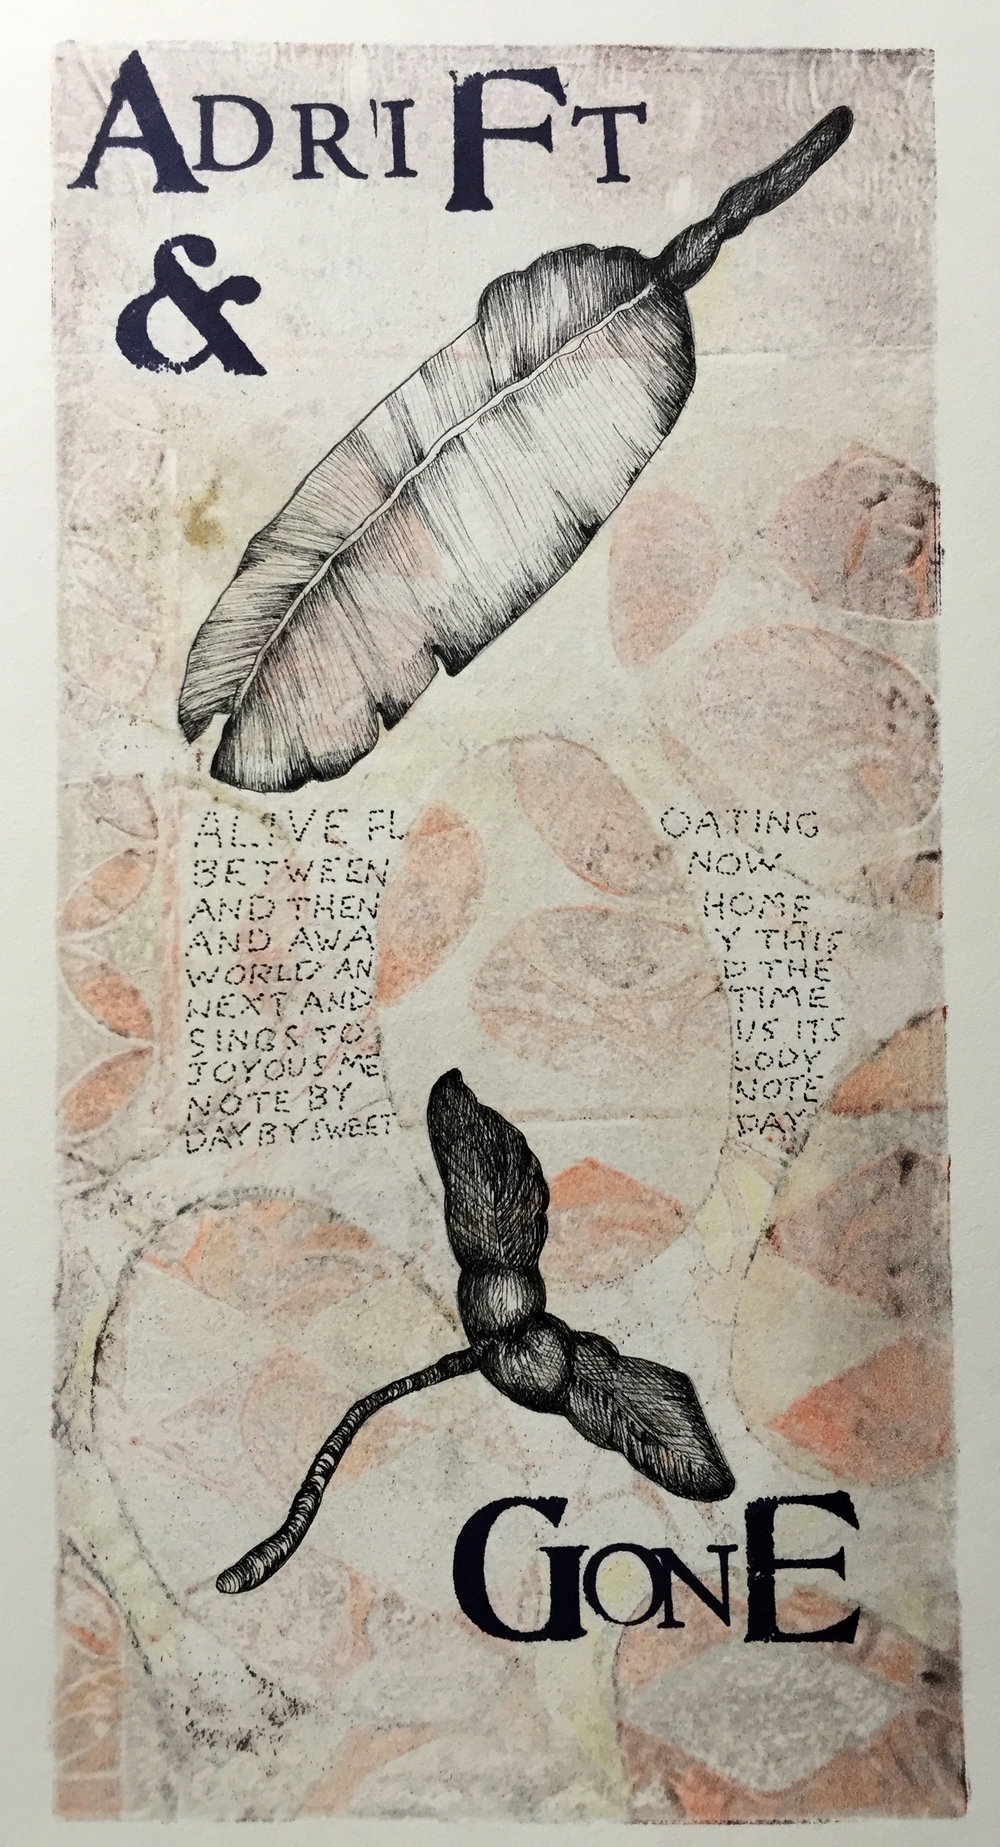 Adrift   6 x 12 inches  mixed media  image: Susan Webster  hand written and stamped text: Stuart Kestenbaum  2015